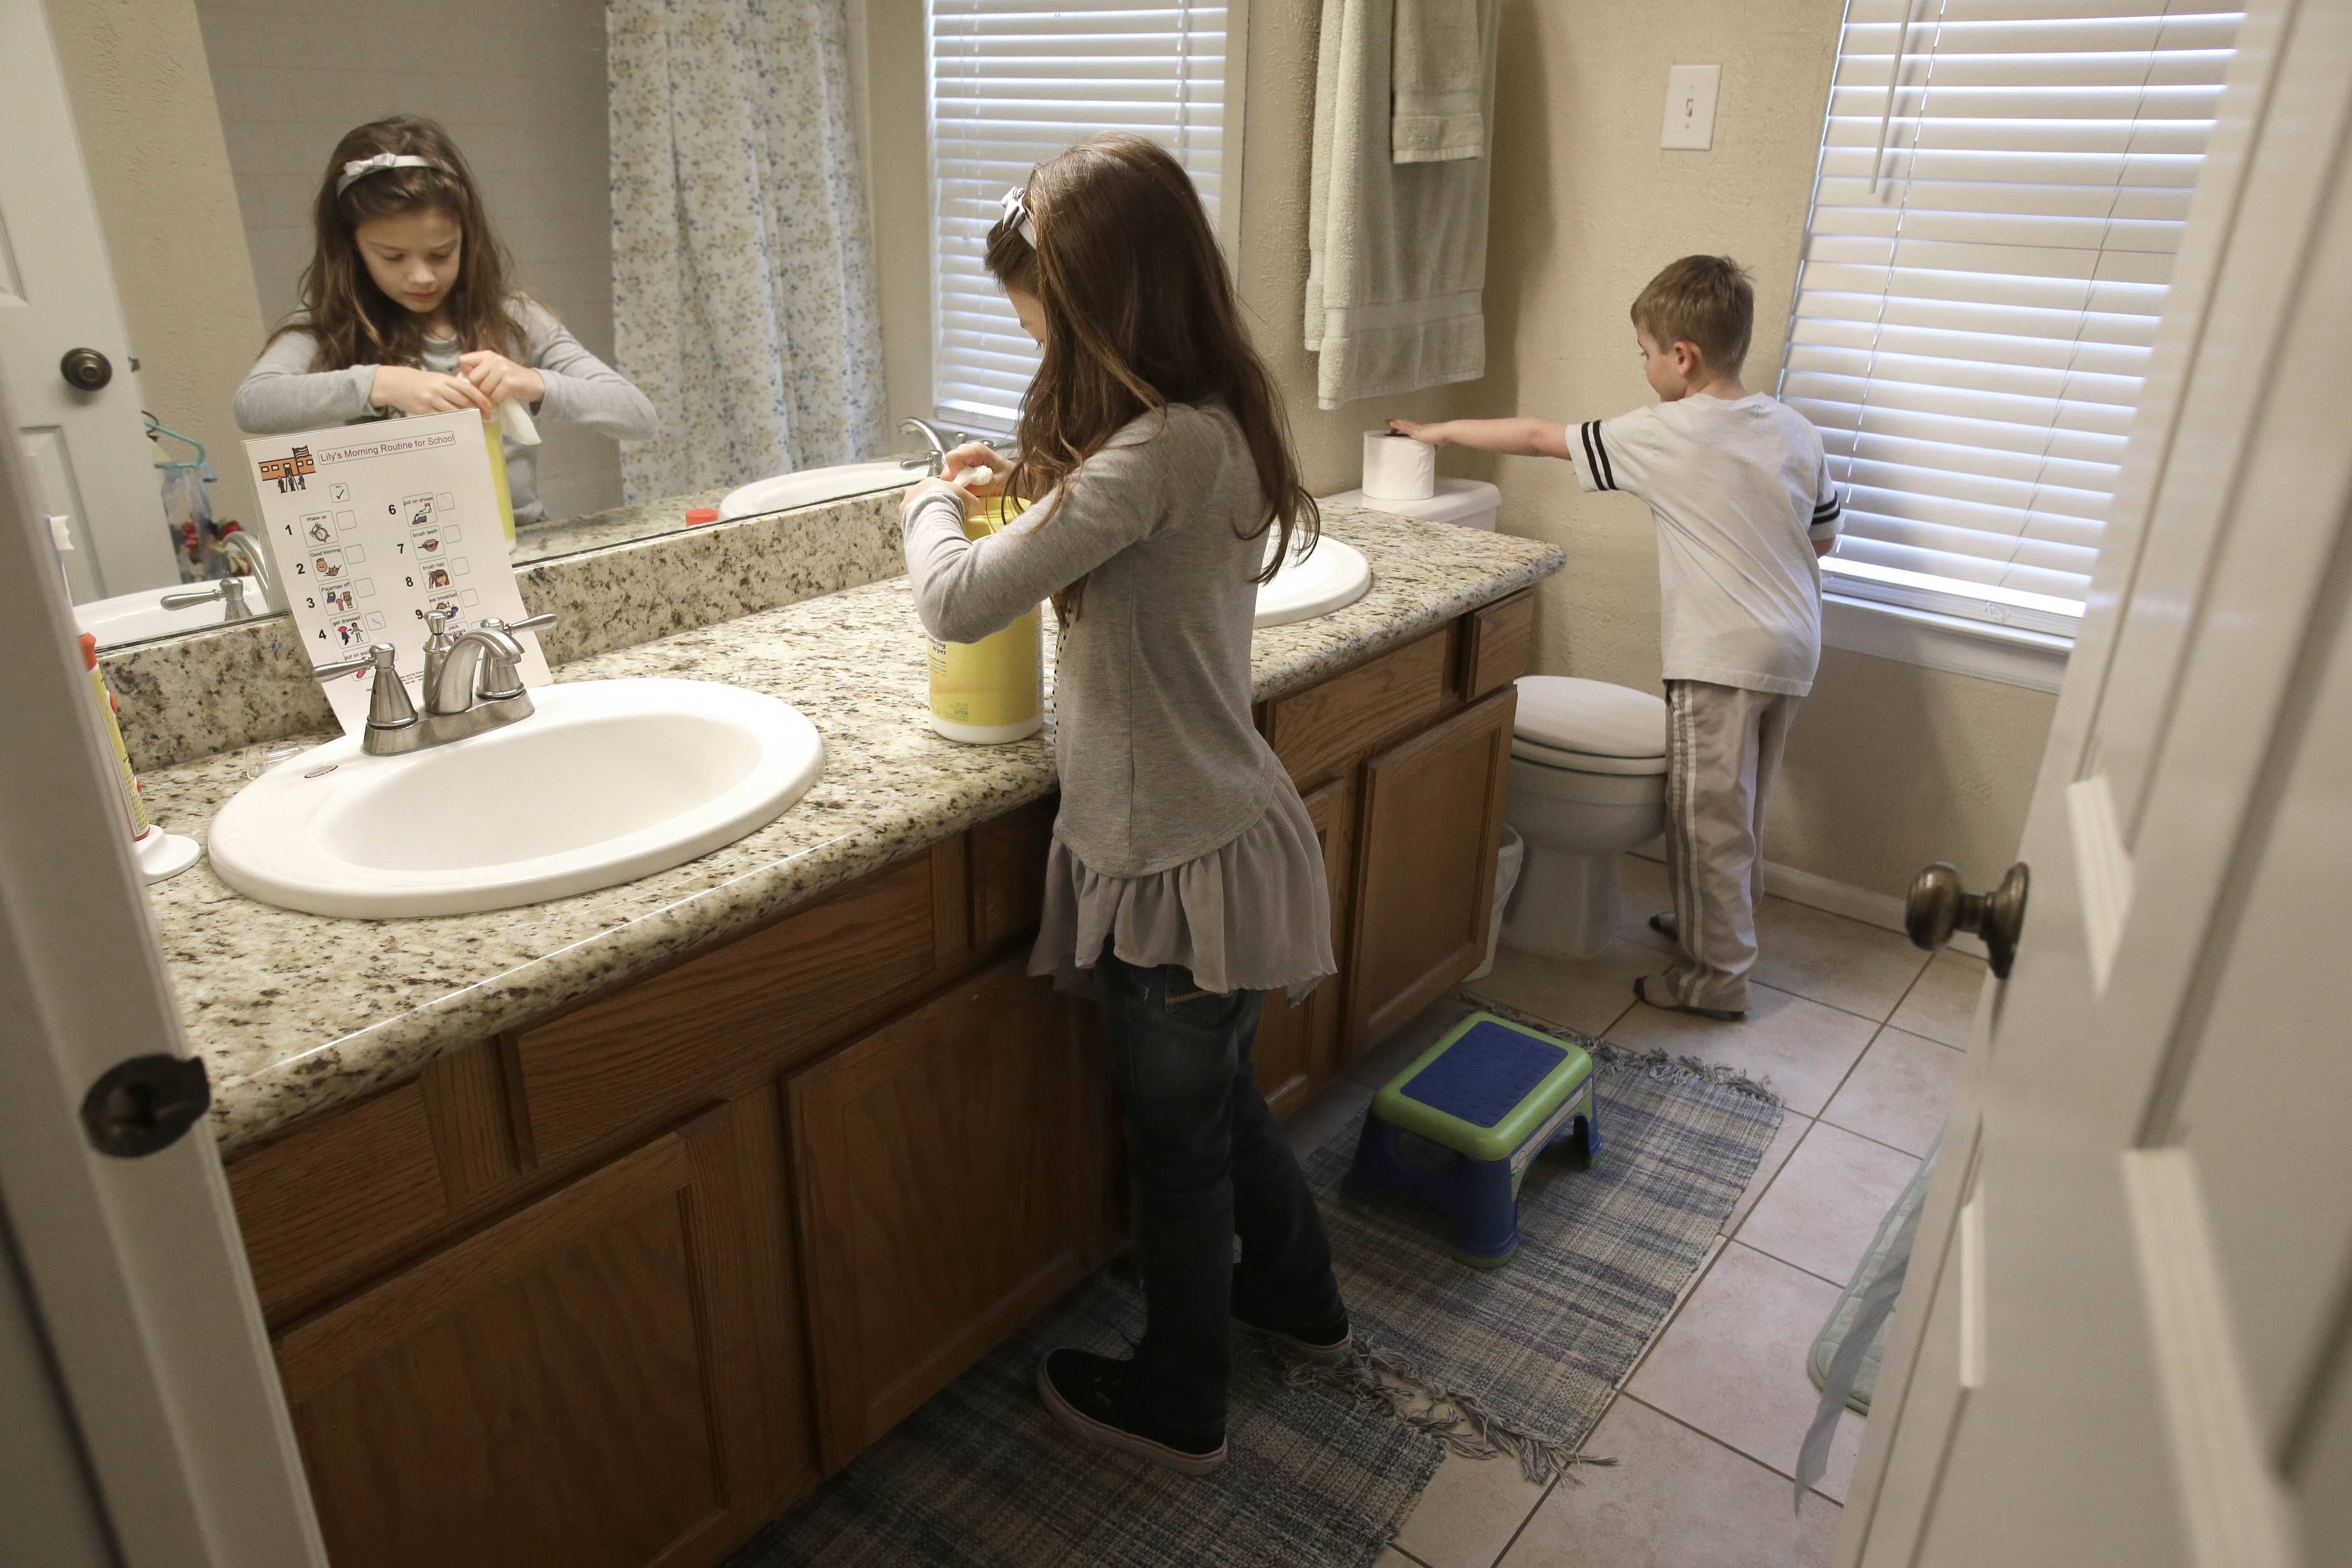 Lily Cherry, 8, cleans her bathroom as her brother Aiden, 6, right, puts out a new roll of toilet paper at their home in Kingwood, Texas. For mother Andrea Cherry, who works full time, having the kids help makes it possible for her and her husband who would otherwise do all the cleaning, to have enough time to take the kids to their soccer practices and games.